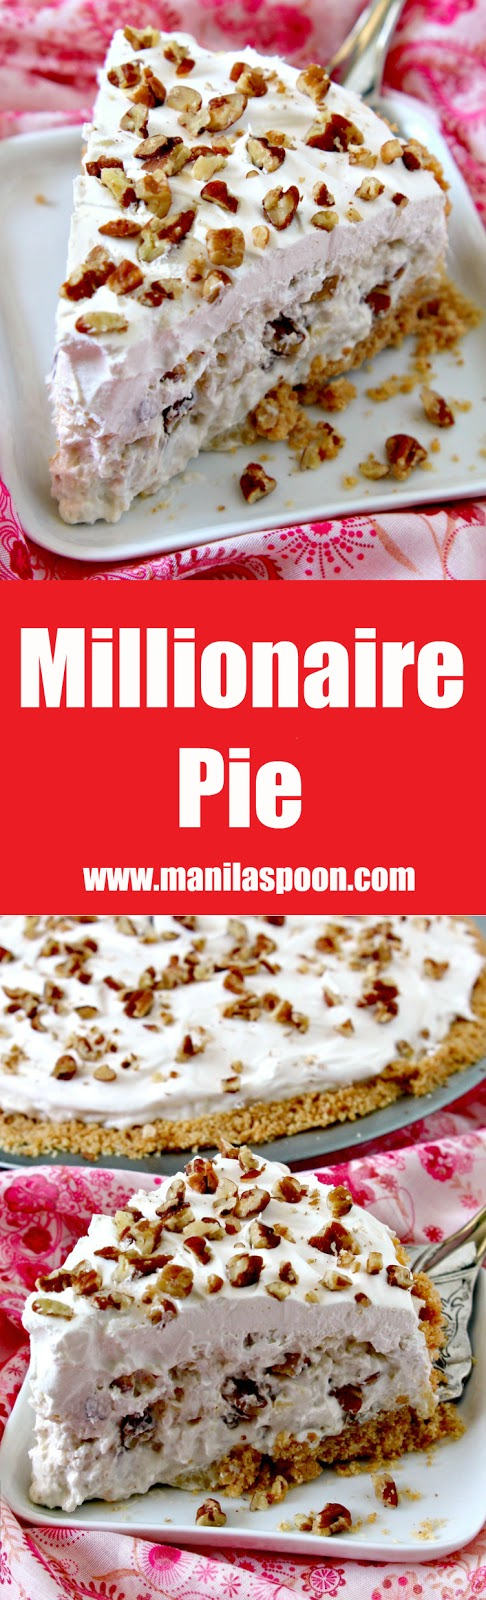 In 15 minutes or less you can make this easy and yummy classic pie that's creamy, fruity-sweet, light and no bake, too. We served this in a potluck and it was a huge hit! Perfect for Christmas and New Year celebrations!! | manilaspoon.com